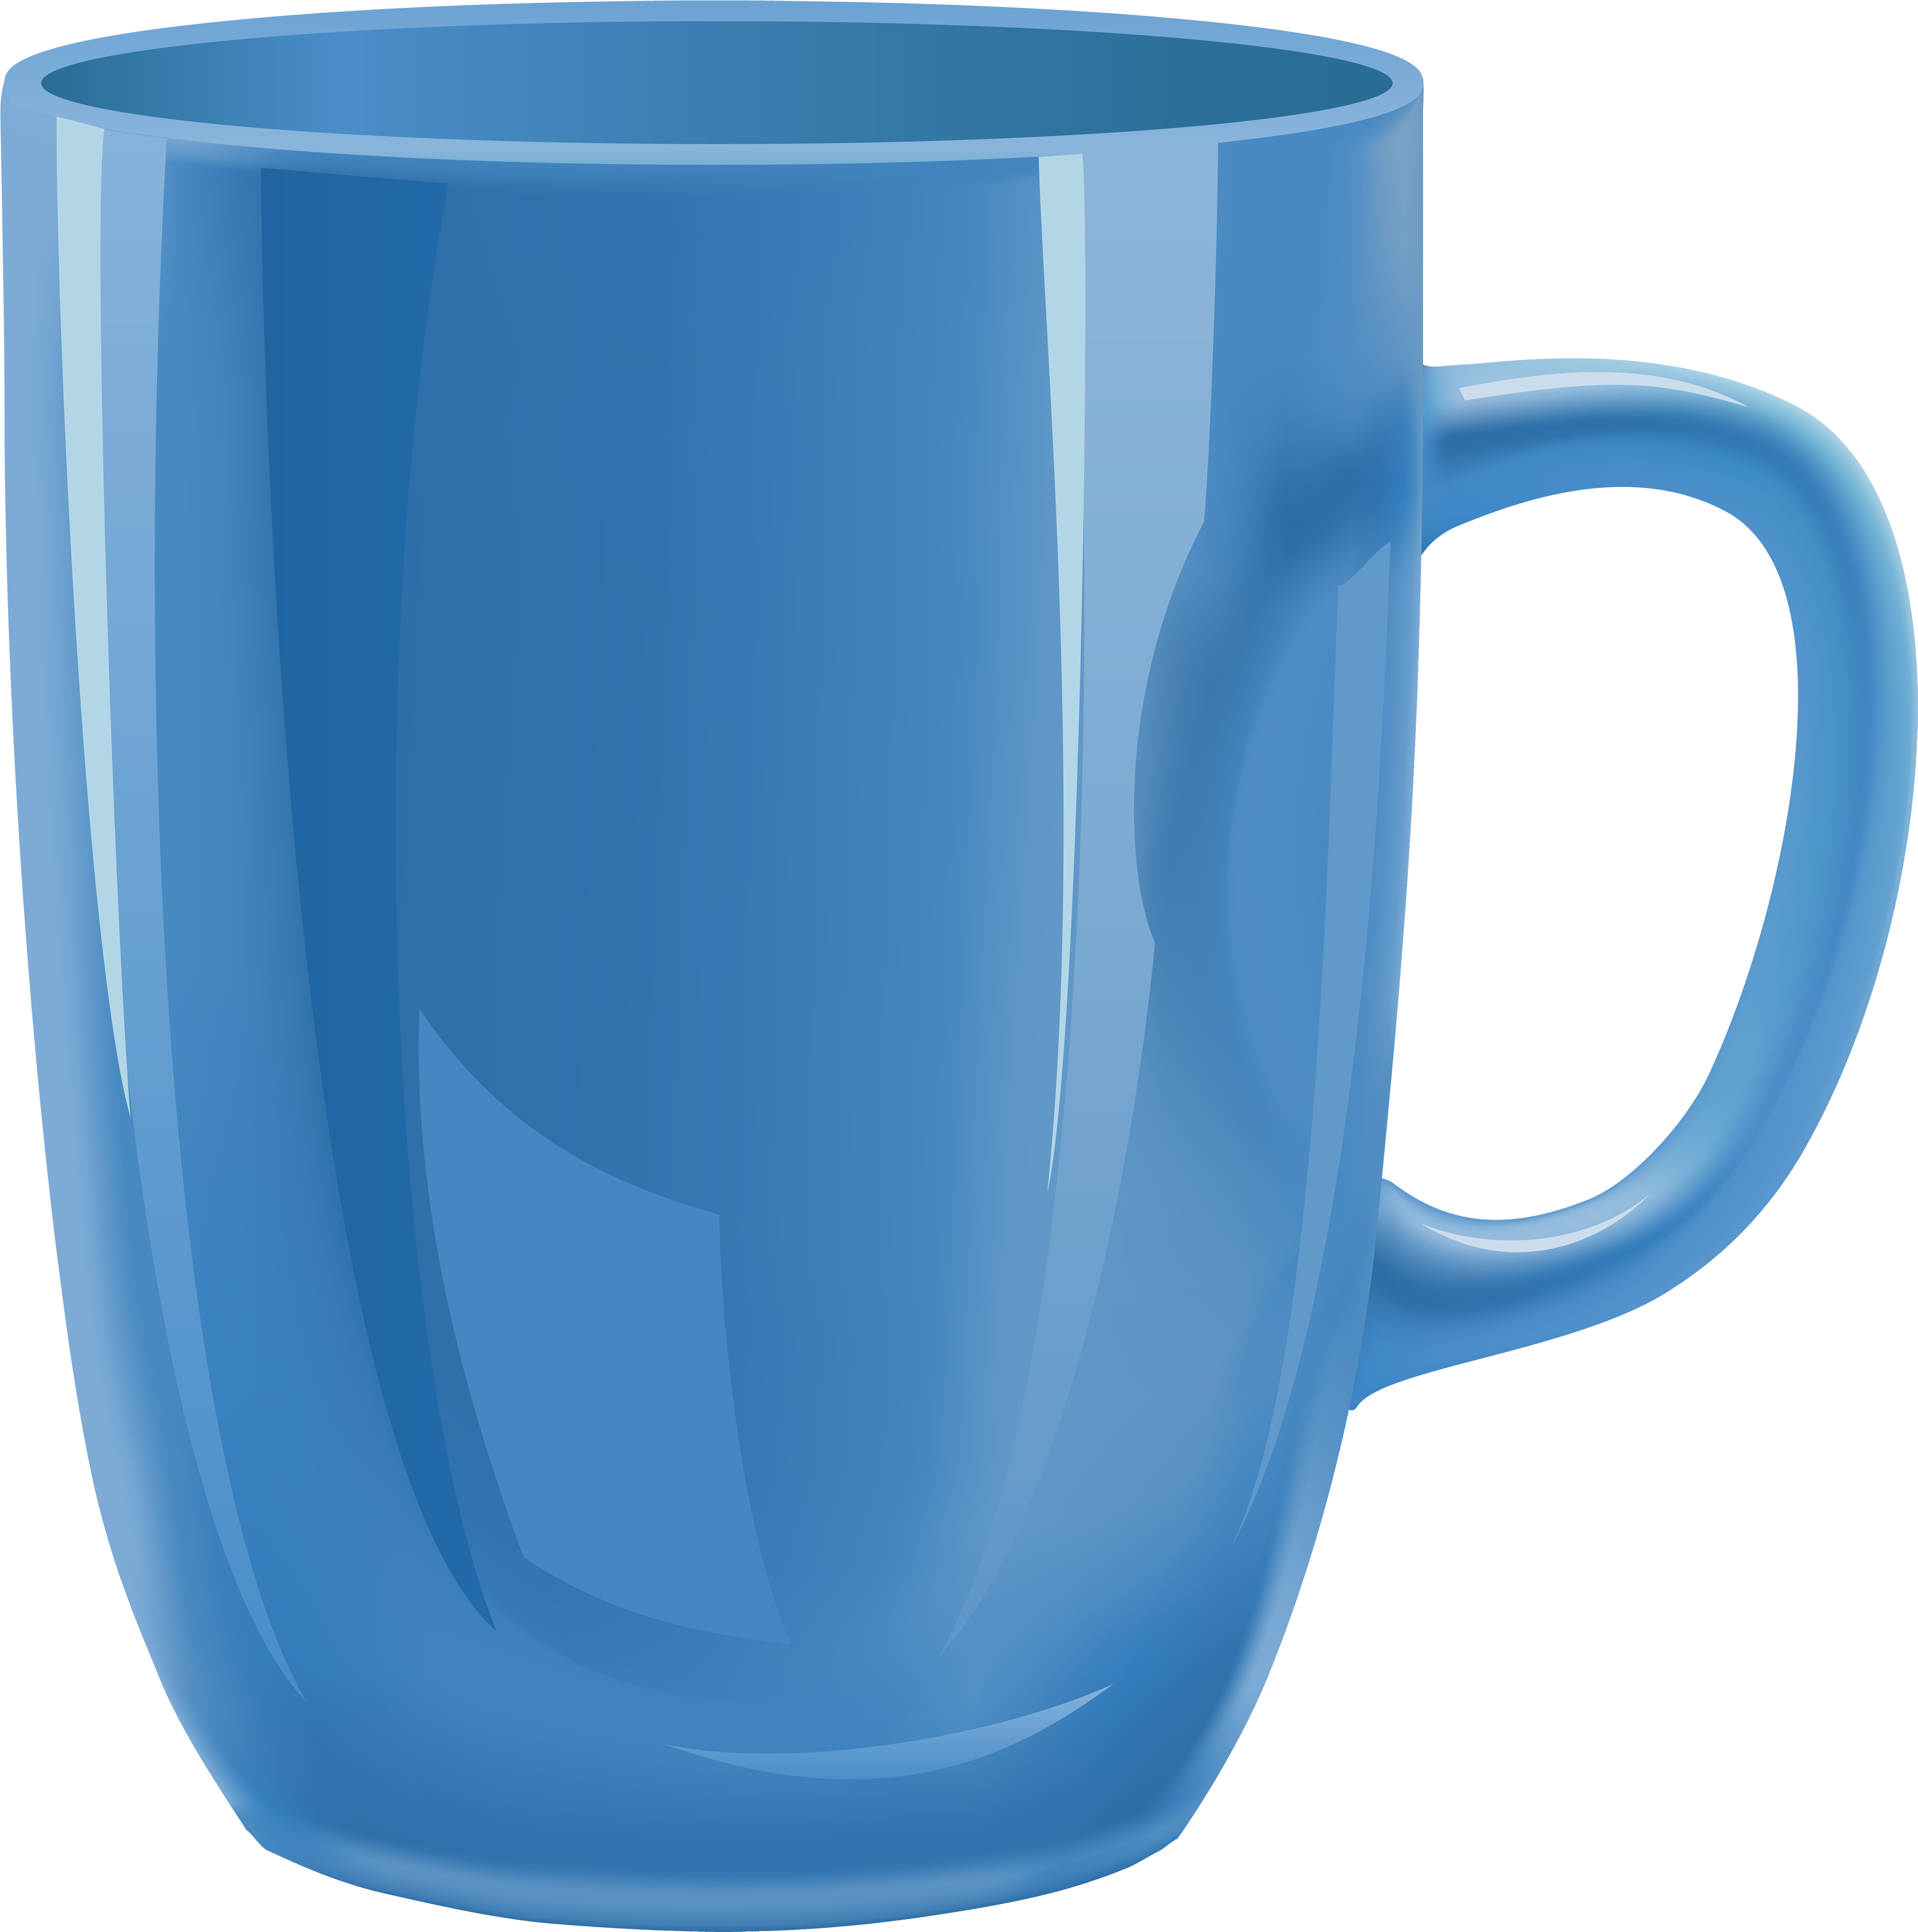 png freeuse Mugs clipart transparent background. Hd blue cup png